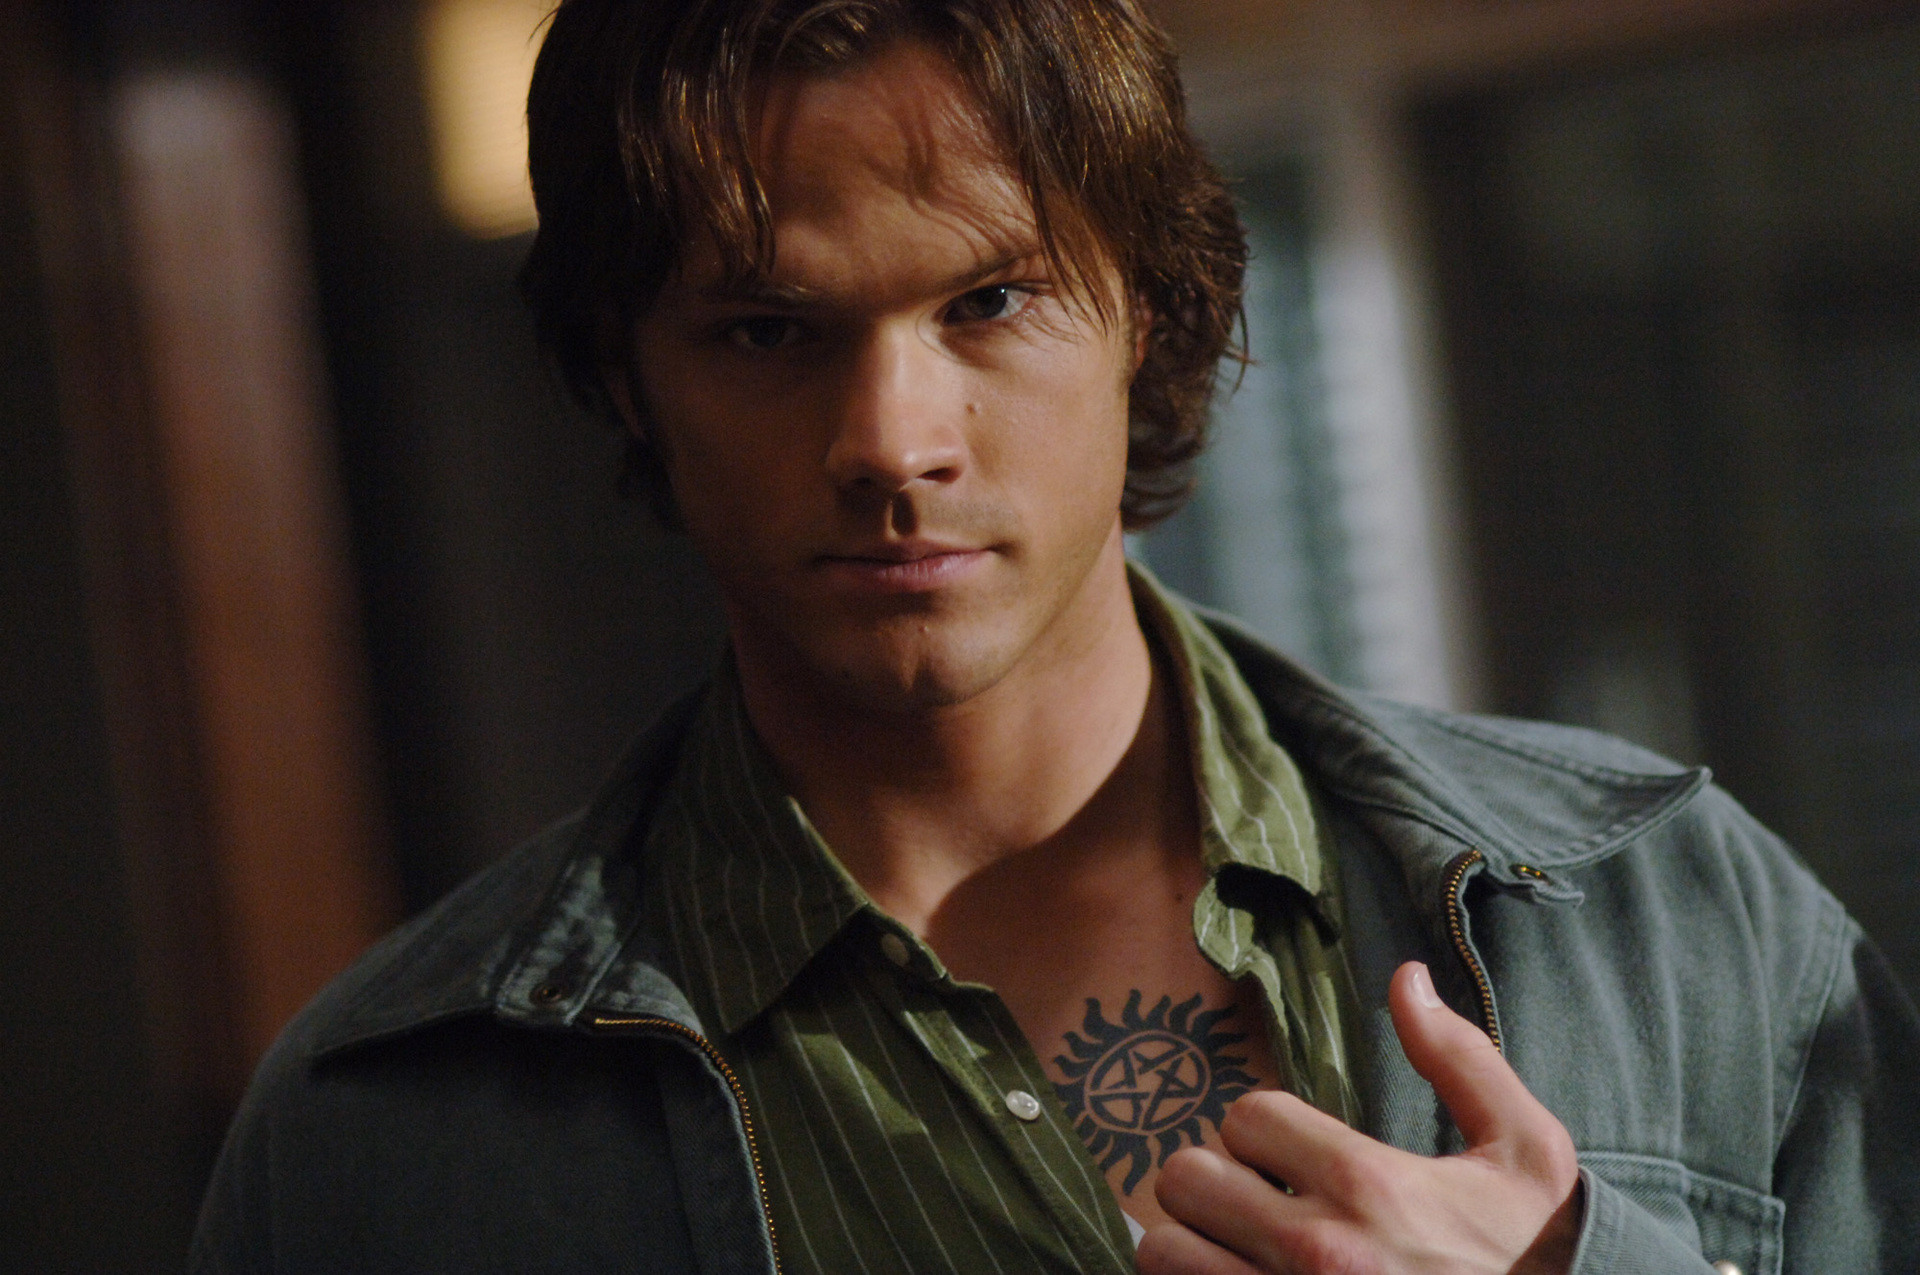 1920x1275 Supernatural Fans images Spn HD wallpaper and background photos